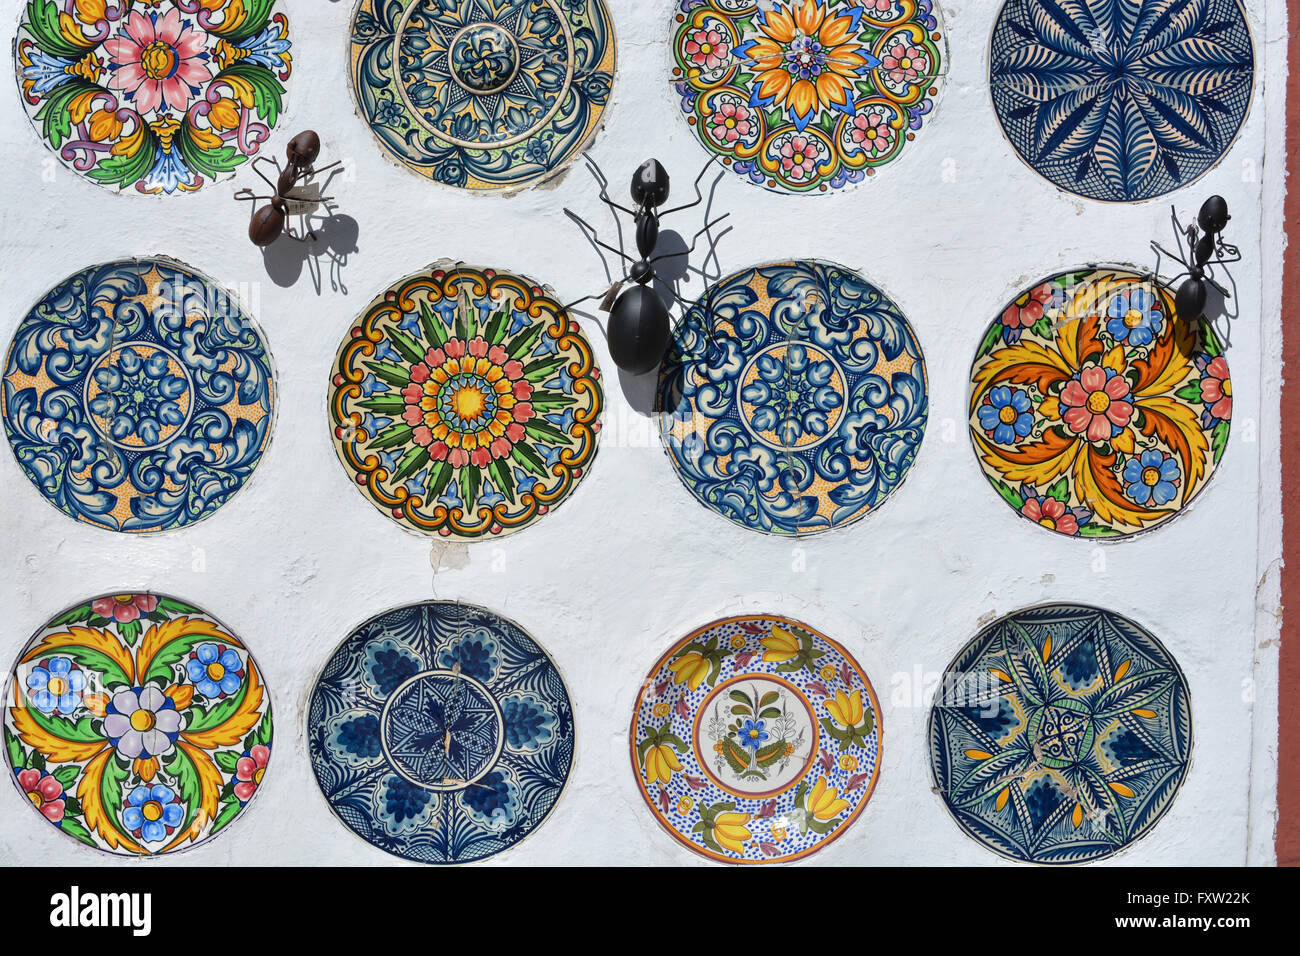 Display Of Hand Painted Ceramic Plates And Metal Ants